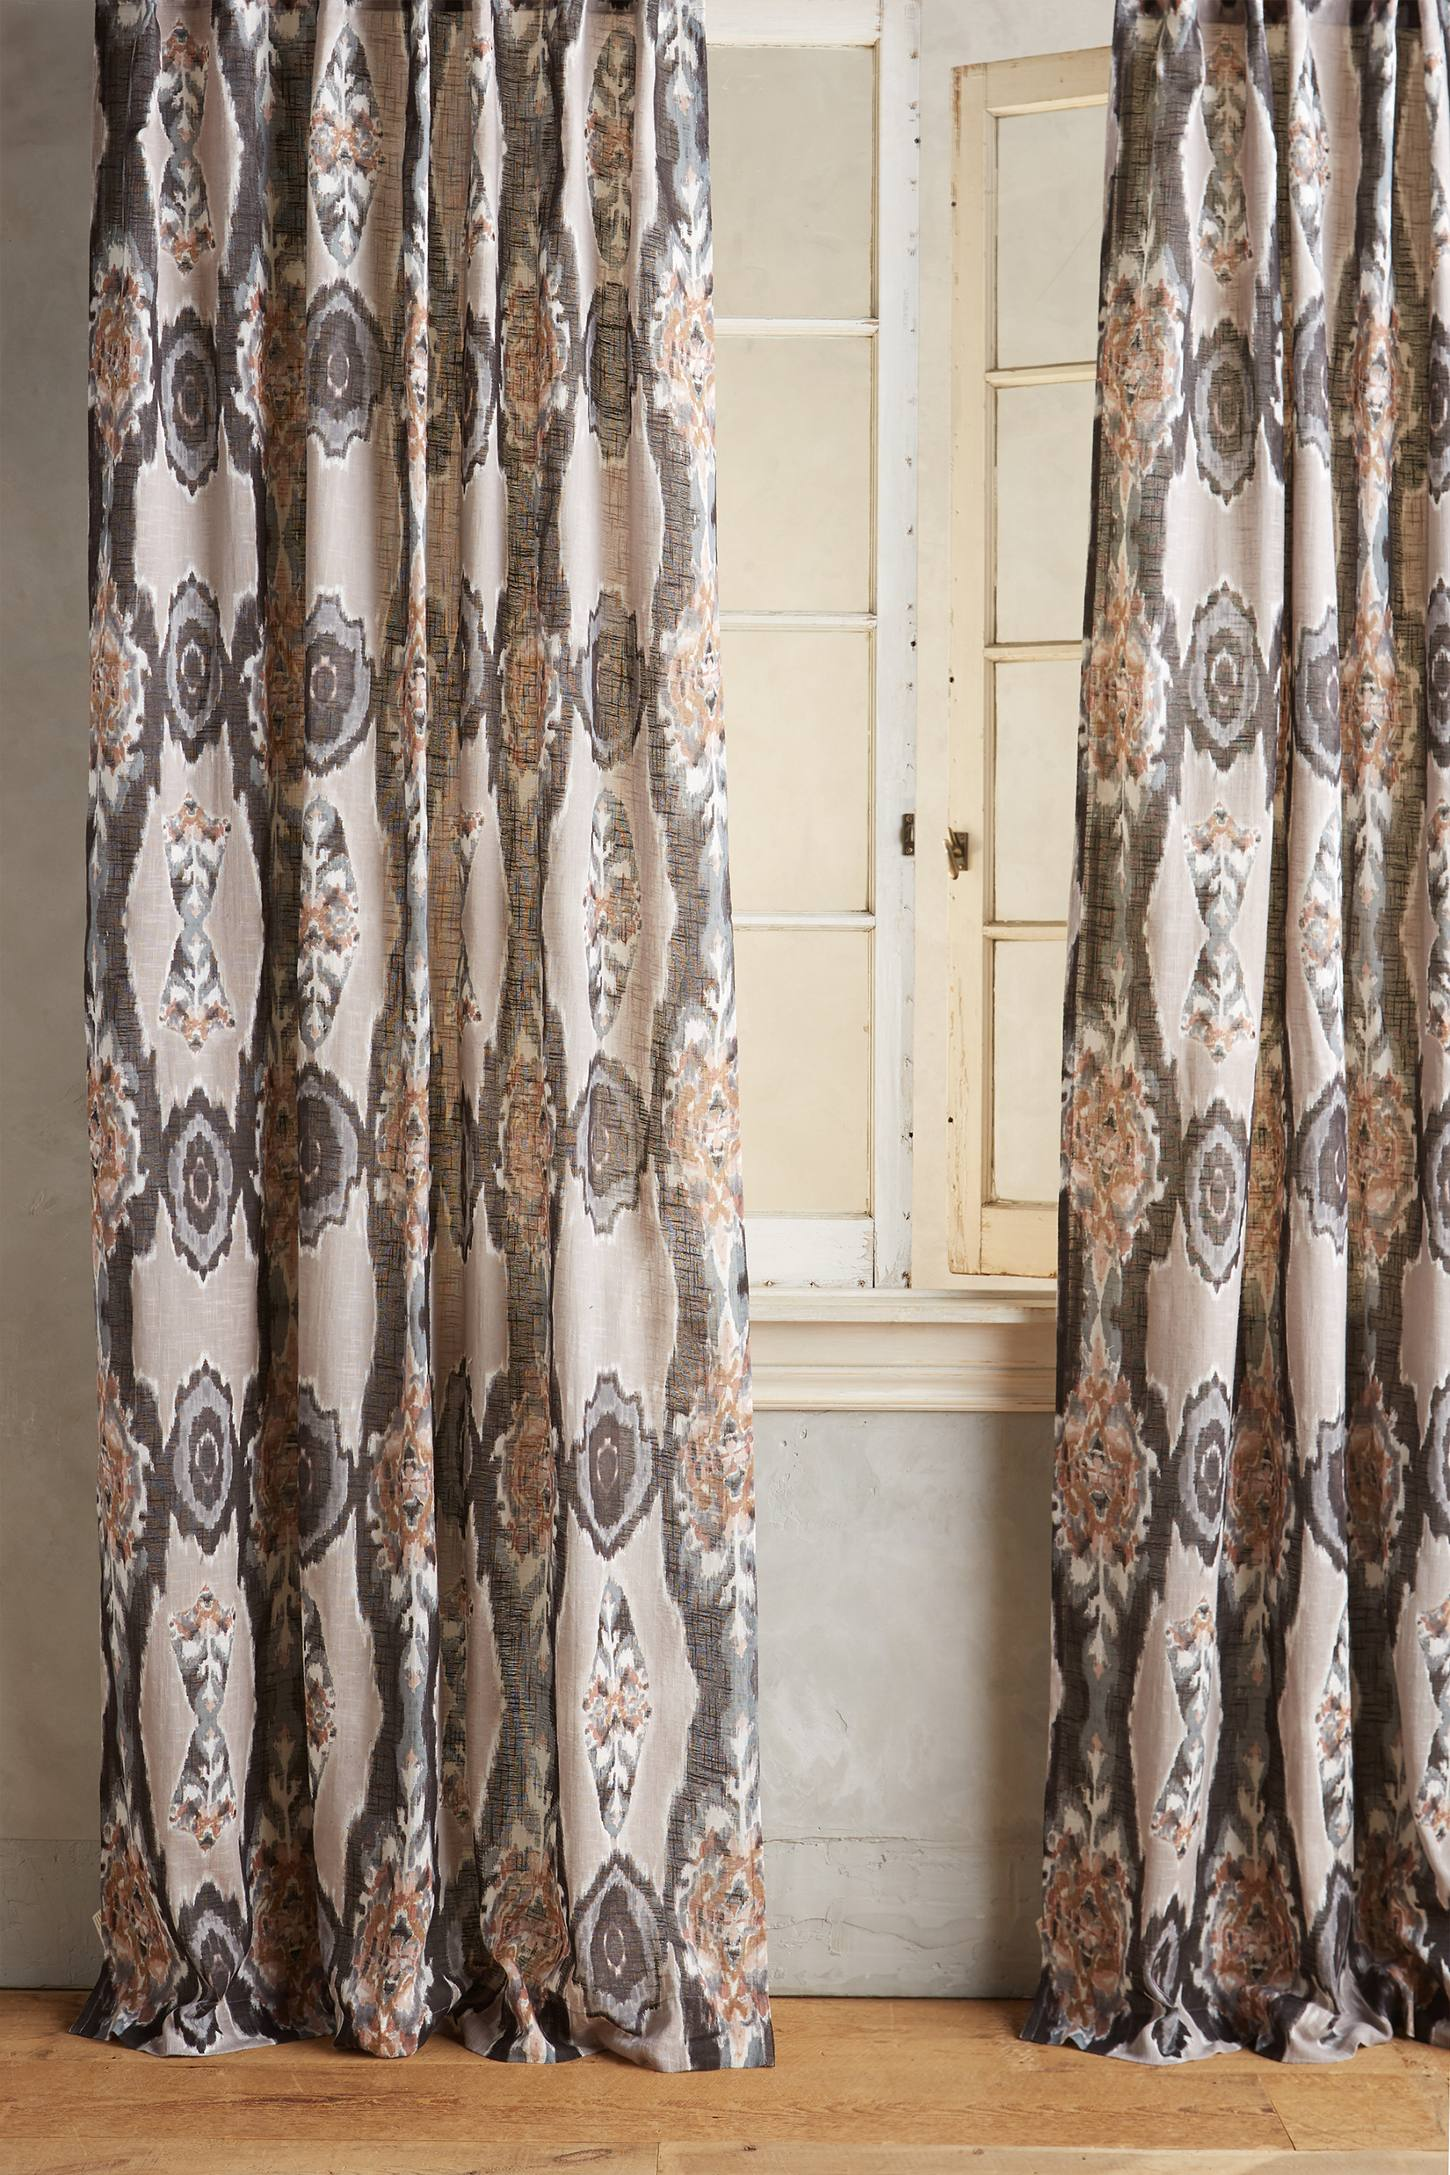 Slide View: 1: Stretched Ikat Curtain